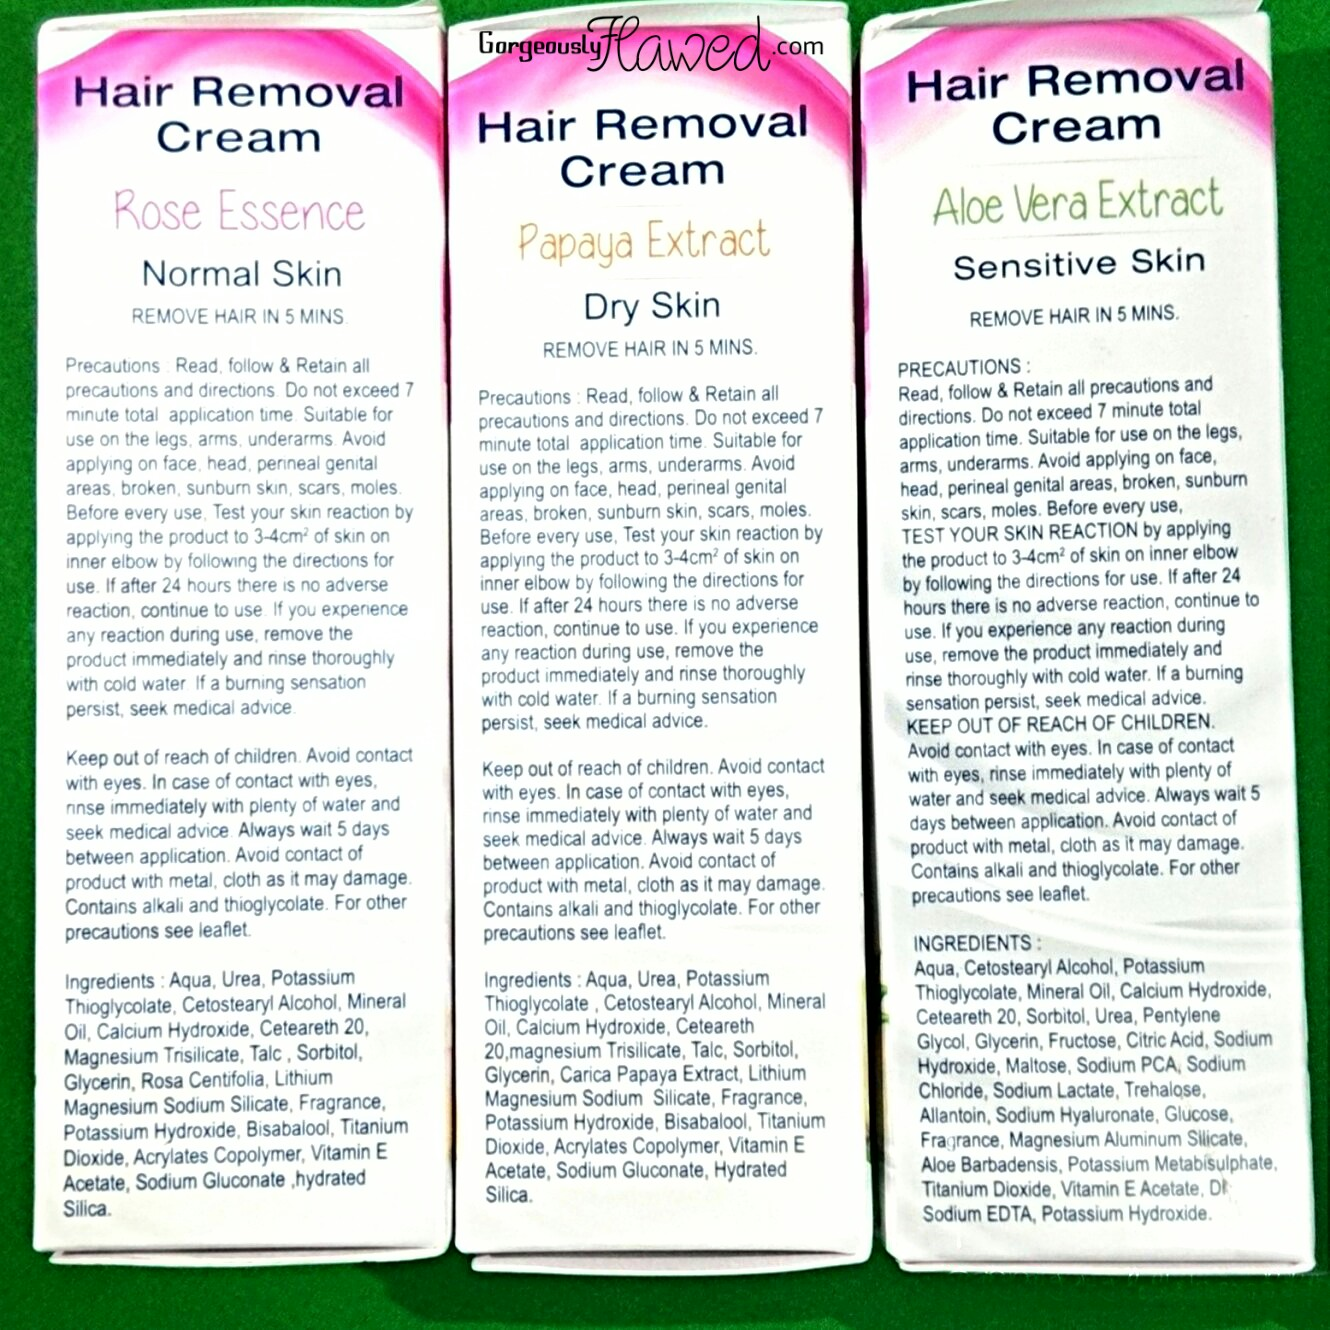 Elois Hair Removal Cream